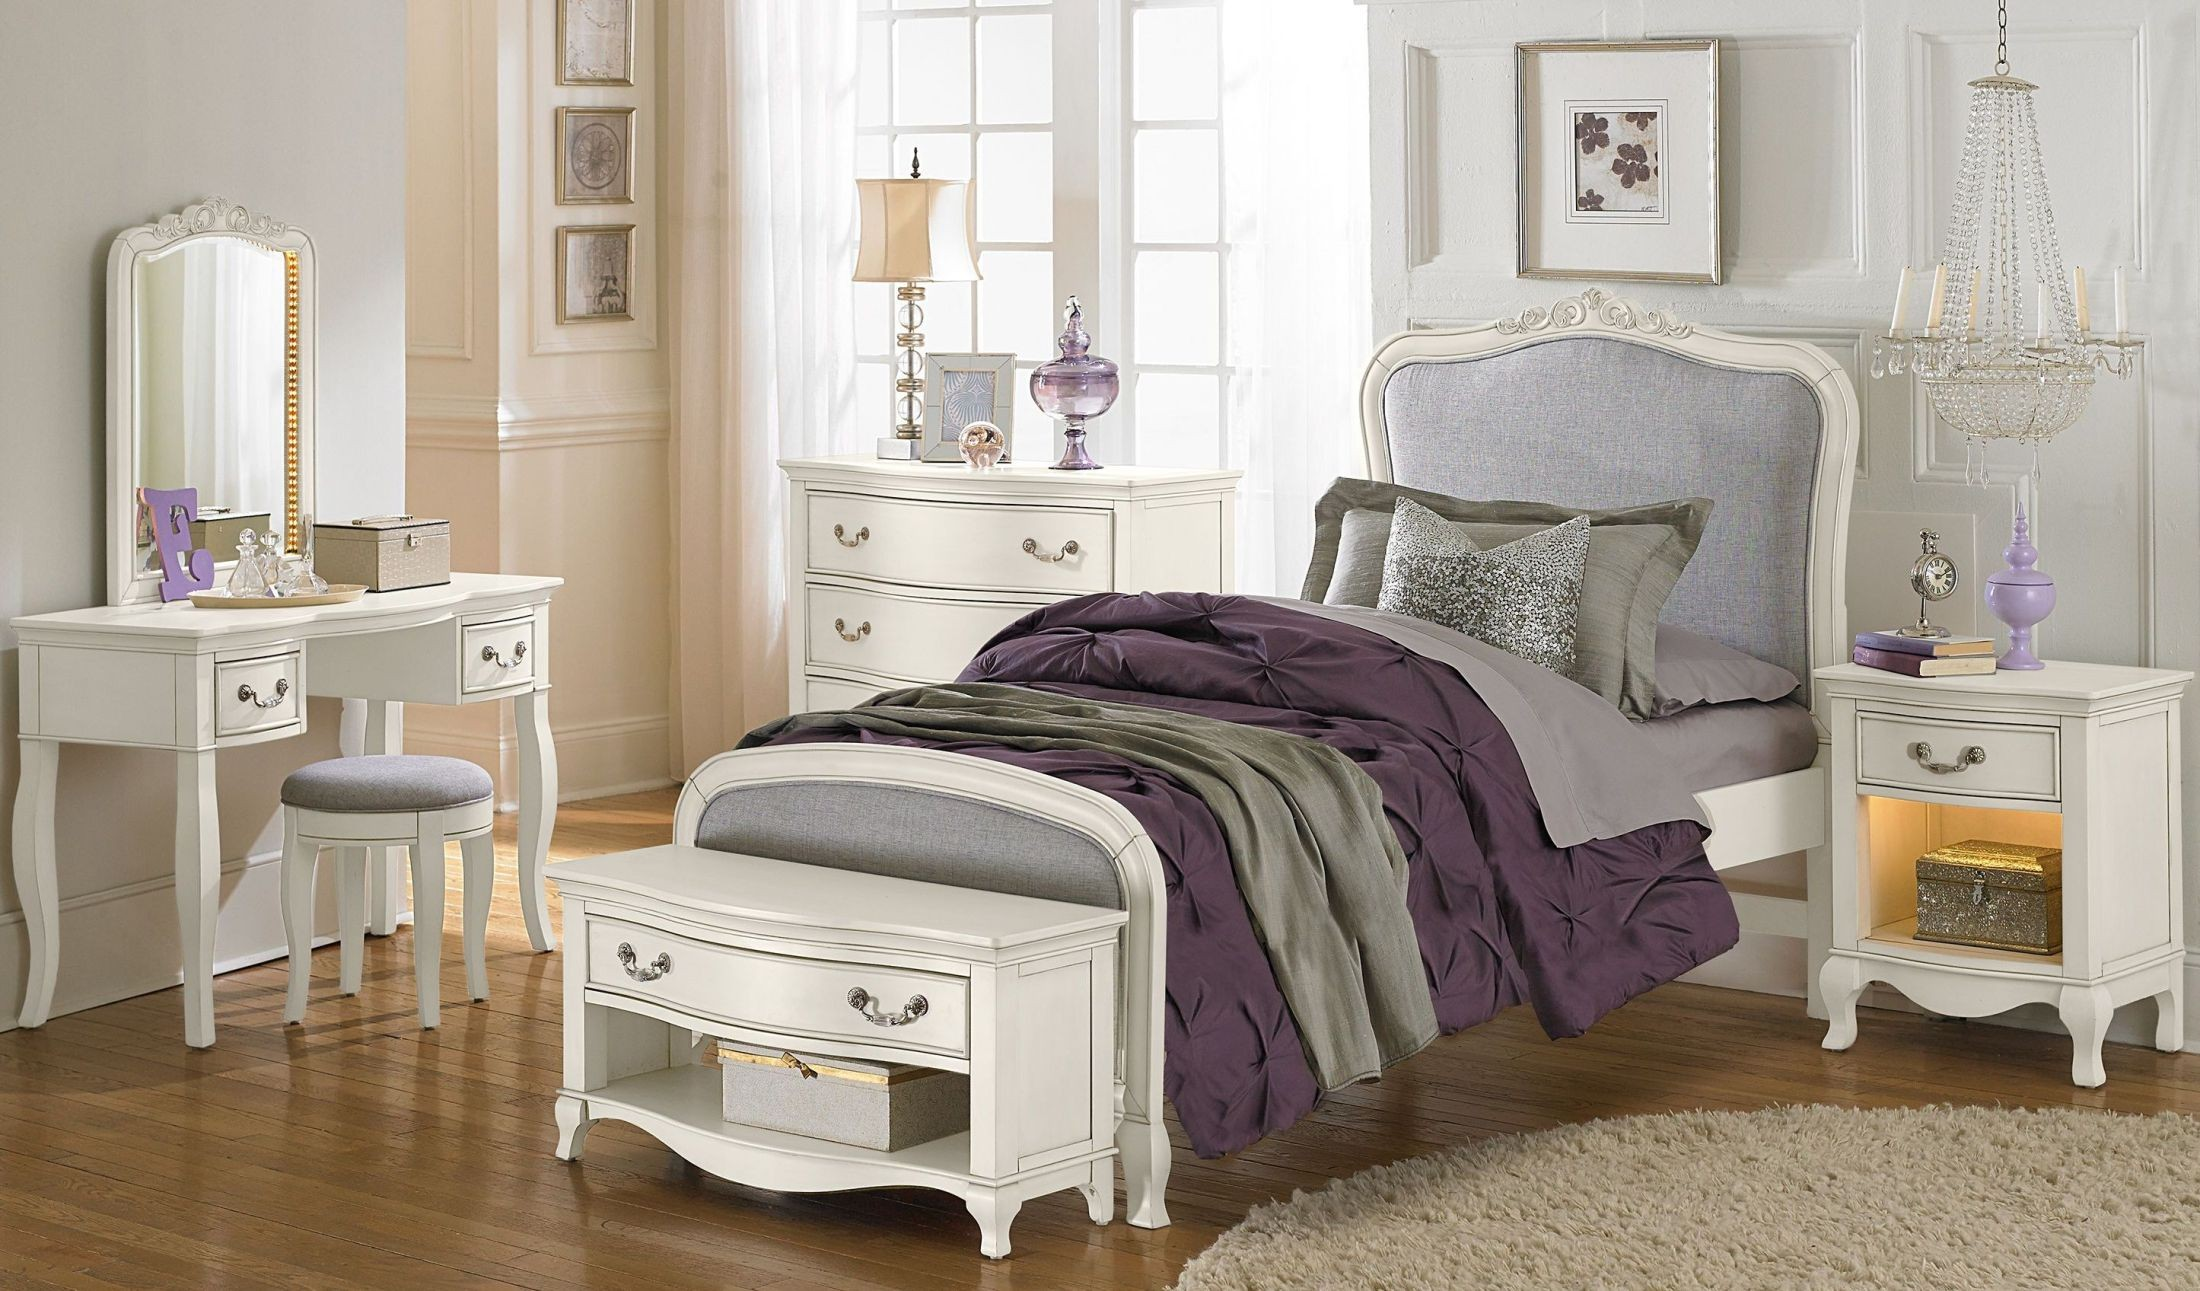 Kensington Antique White Katherine Upholstered Youth Panel Bedroom Set 20020